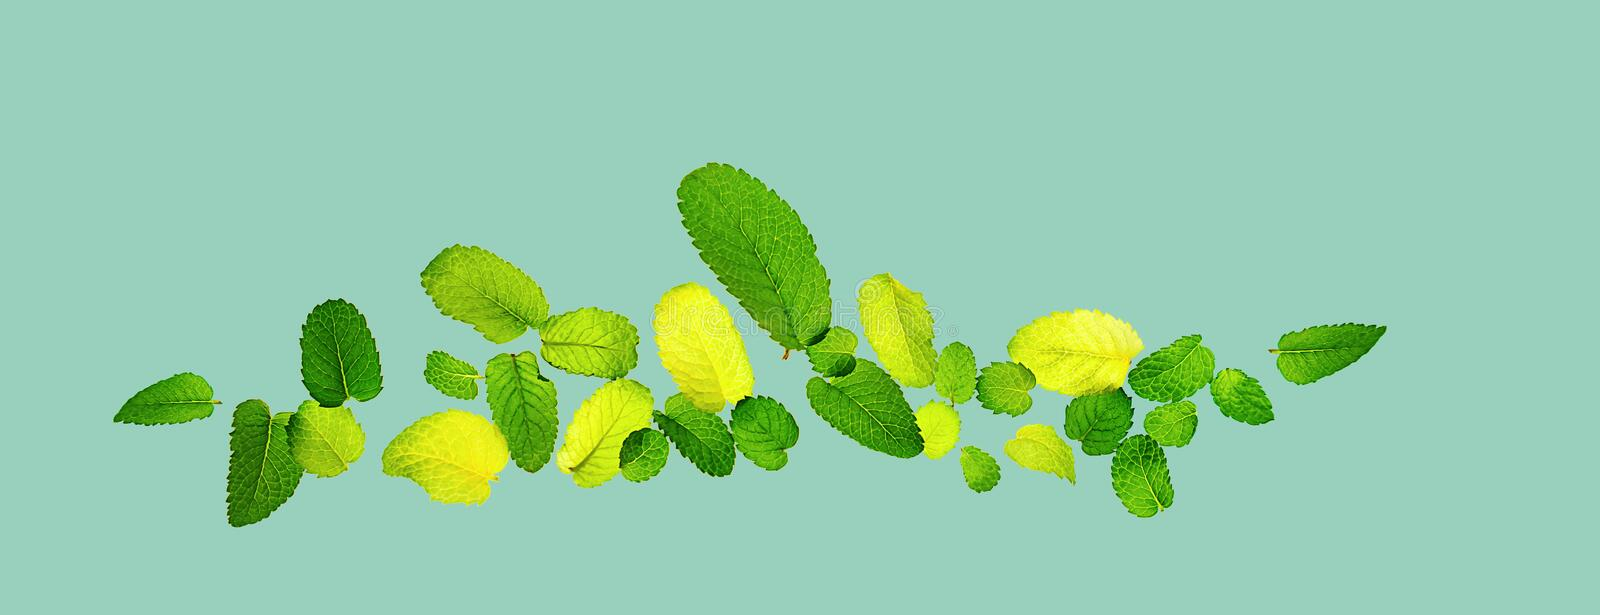 Pattern made from fresh flying mint leaves on trendy 2020 neo mint background royalty free stock image